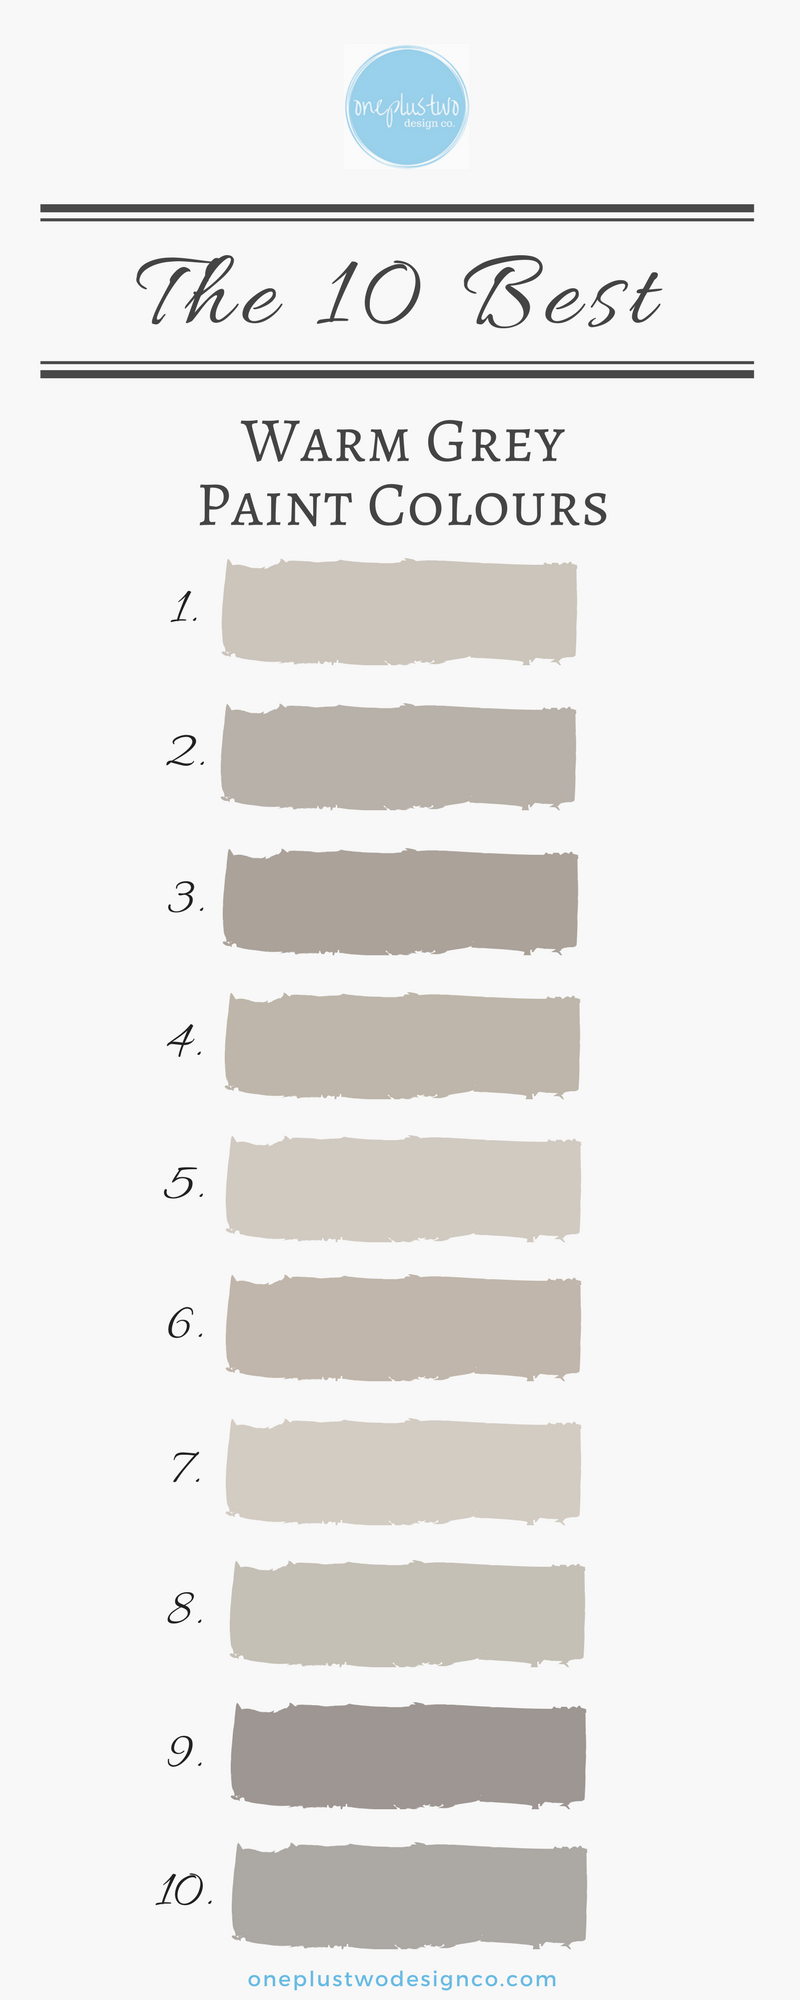 Awesome Choose One Of The Top 10 Best Warm Grey Paint Colours From Sherwin Williams  For Your Home Decor. Paint Colour Selection Made Easy For You With These ...